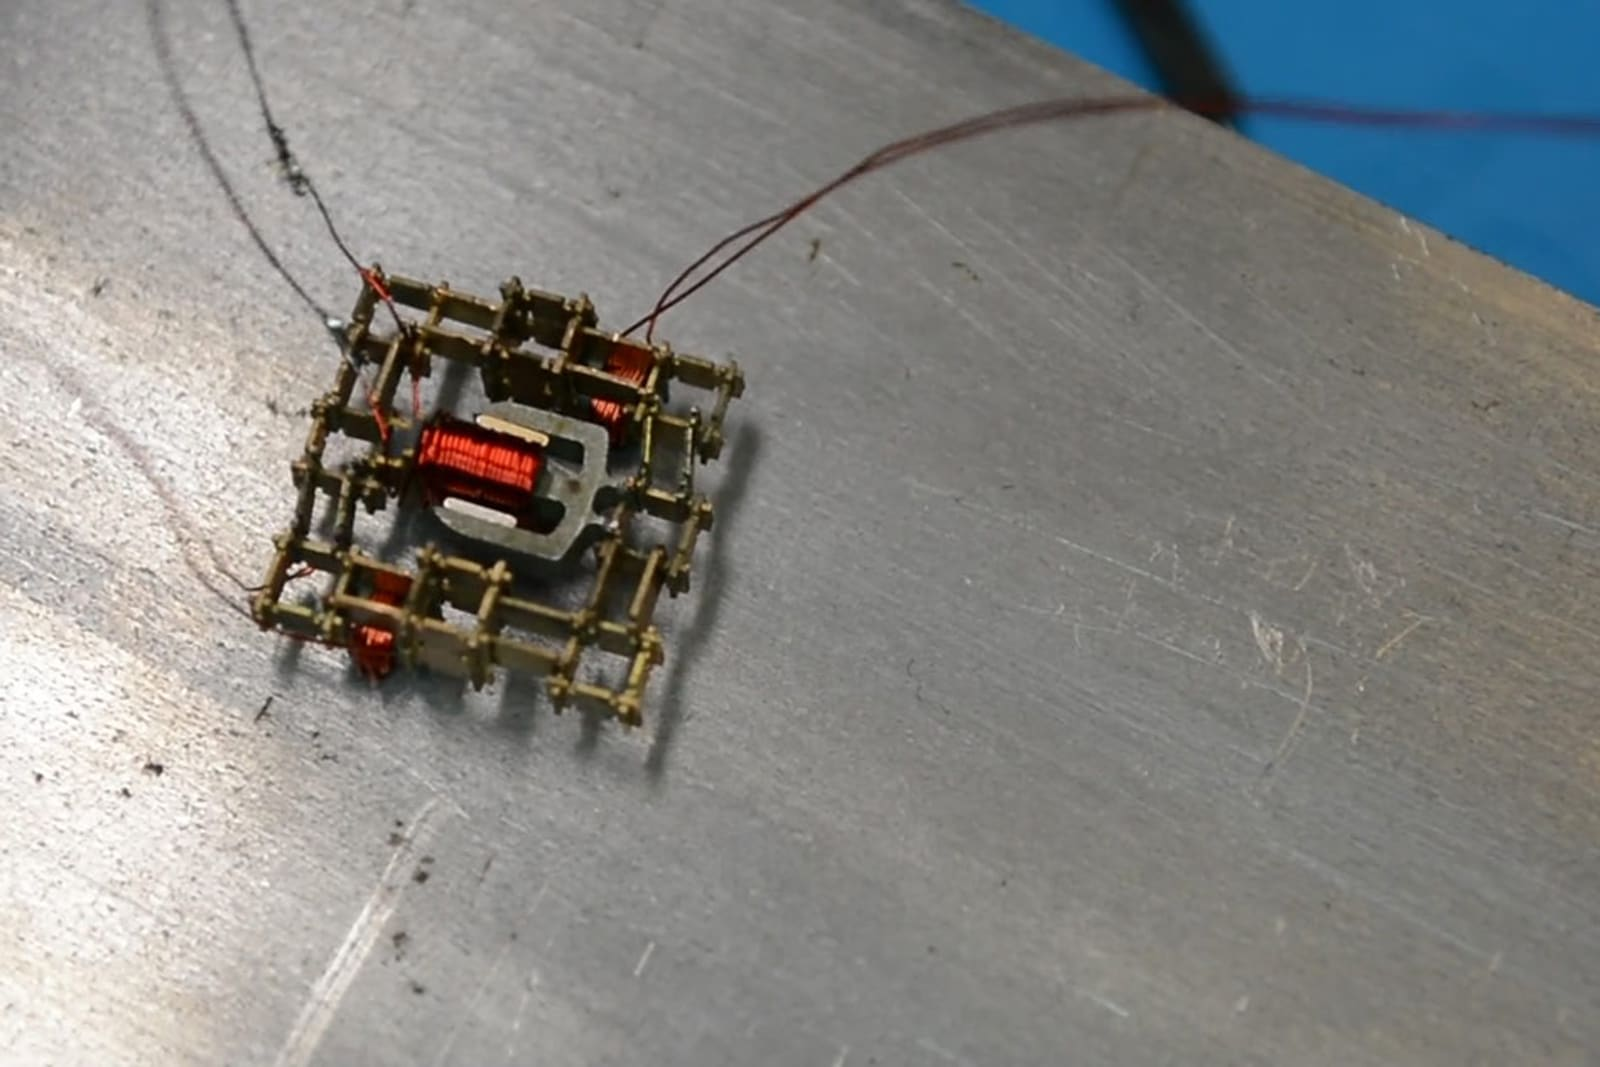 Tiny 'walking' motor could help robots build other robots